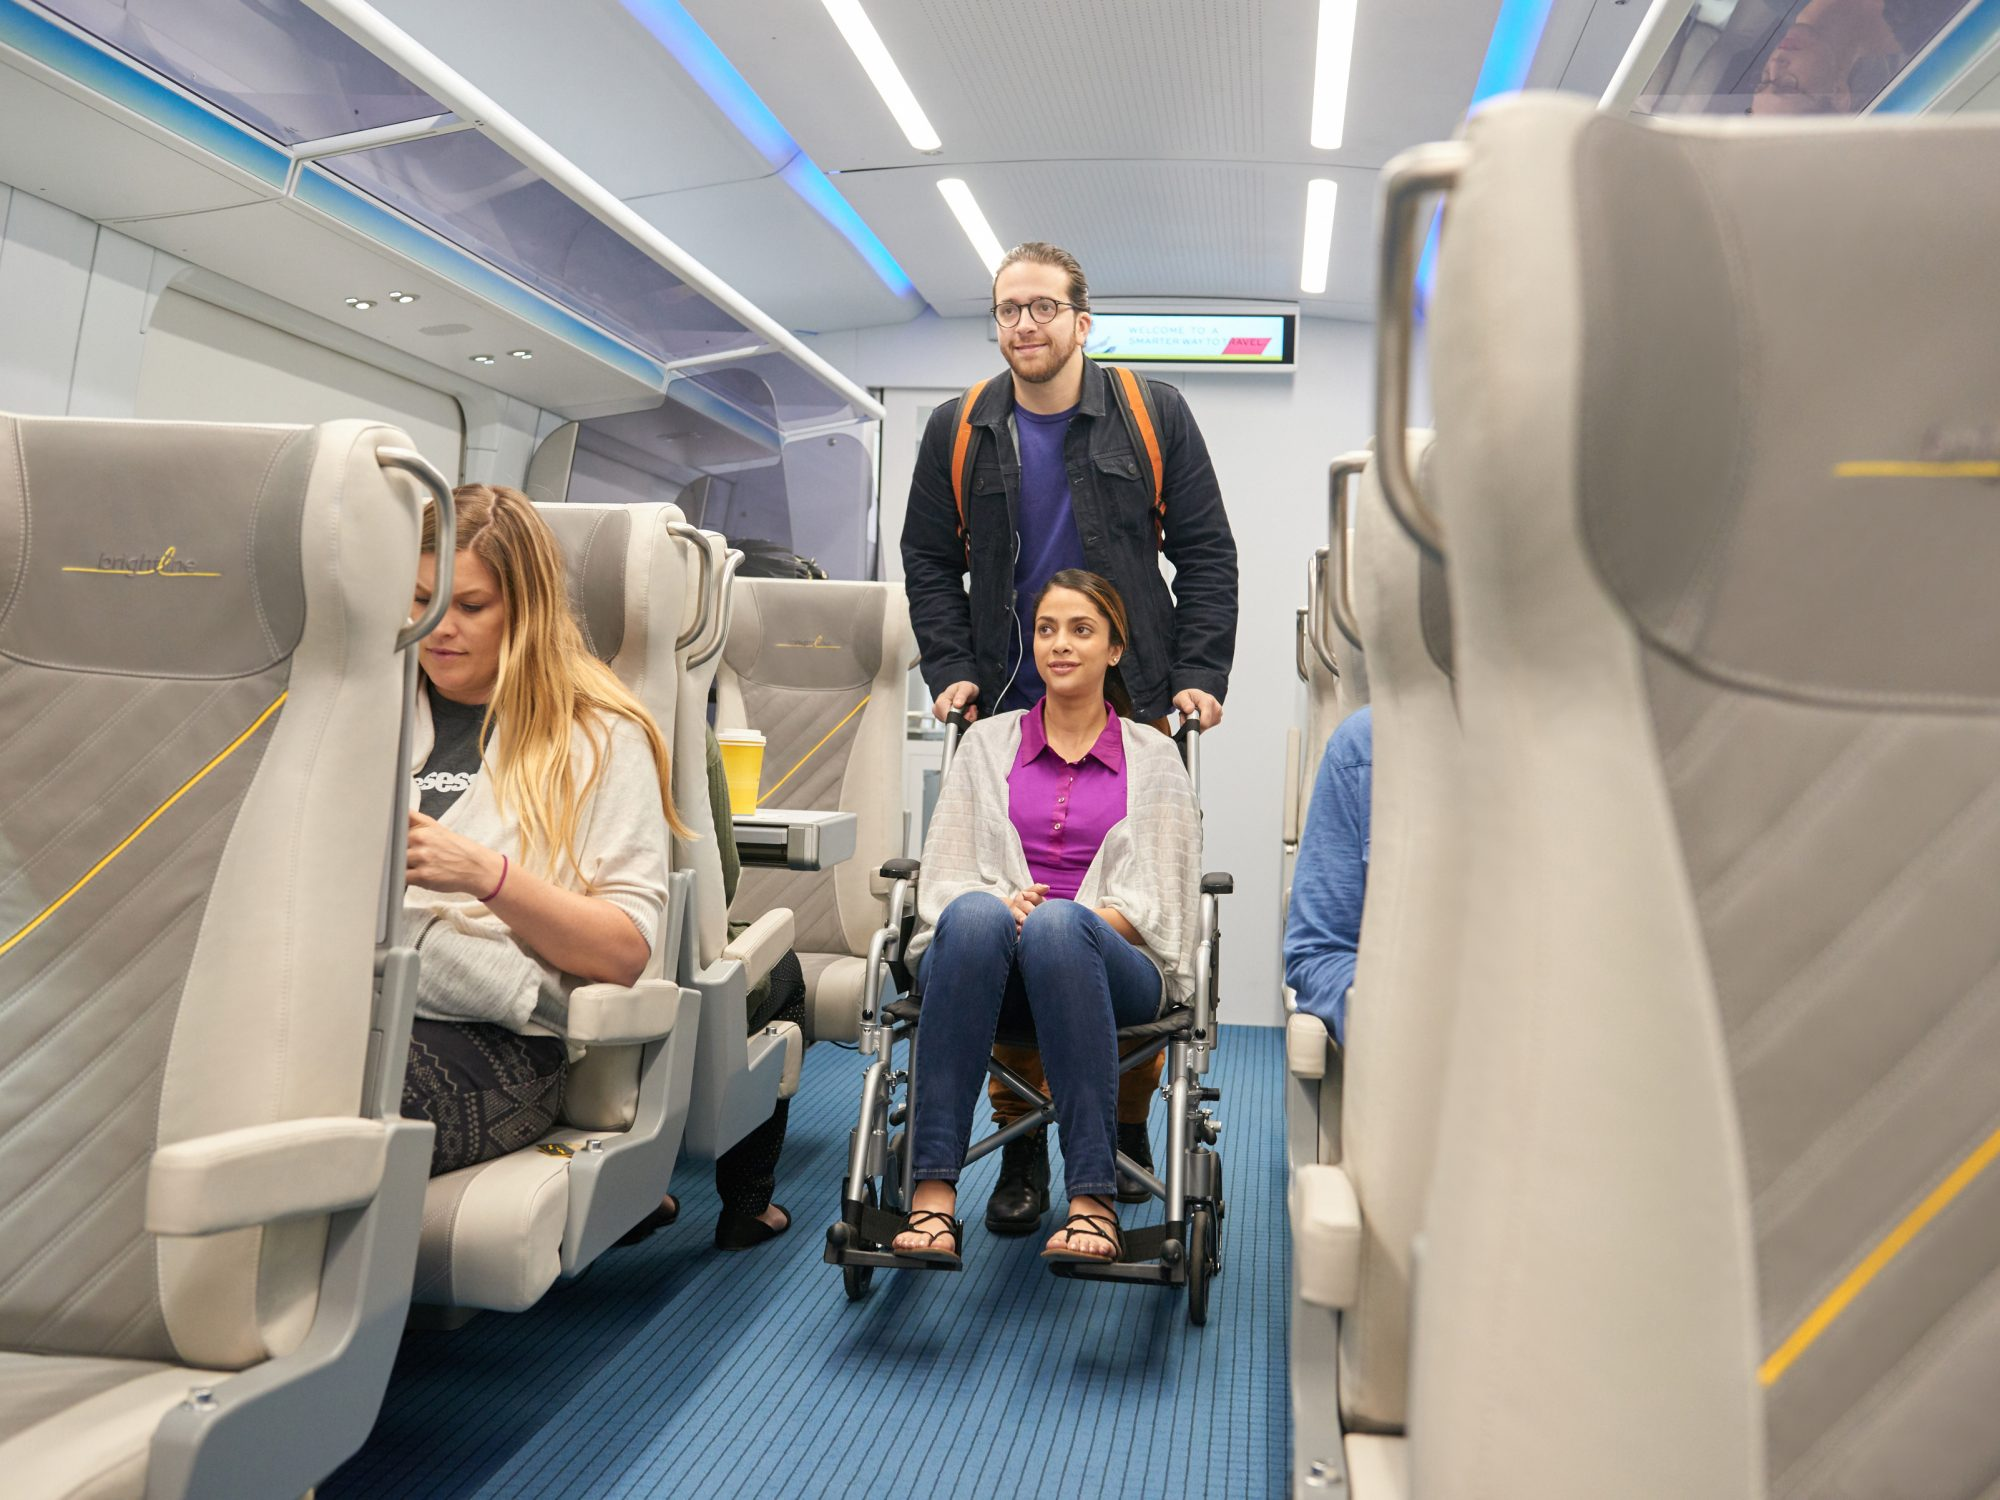 brightline-inside-wheelchair-FT-BLOG1017.jpeg